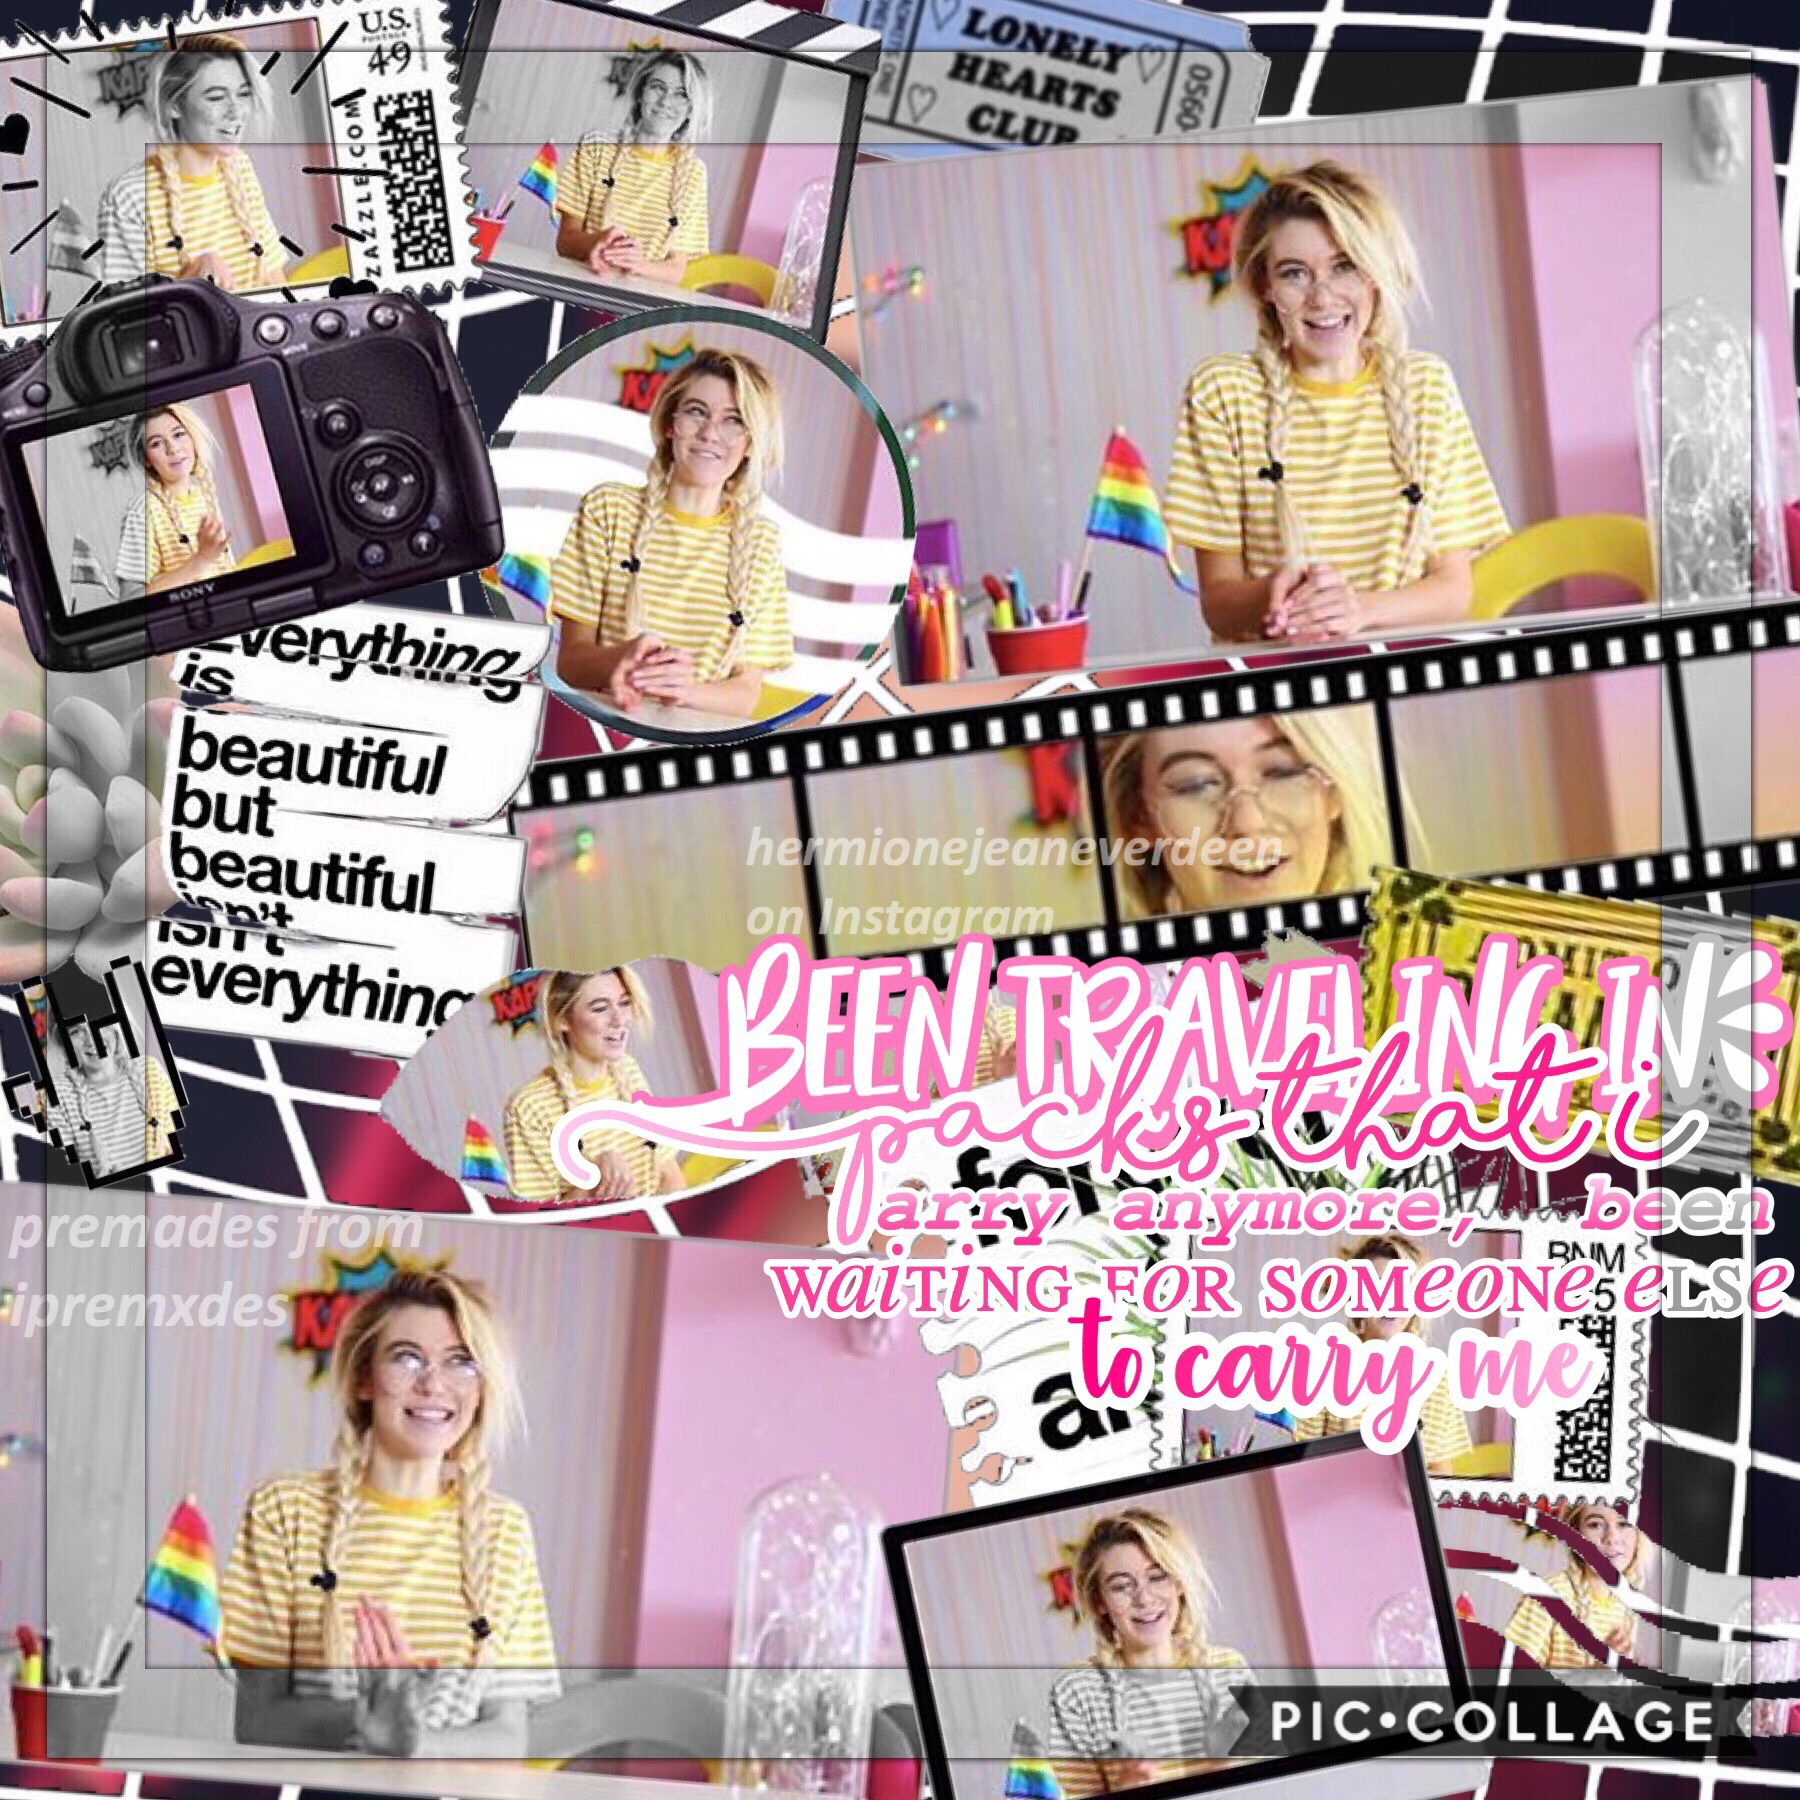 tap Jessie Paege, the YouTuber in this edit, just came out on her channel and(its a 2 part video) the videos are so amazing, please check them out and show her love! Also, there's a tutorial on this edit on my YouTube channel!